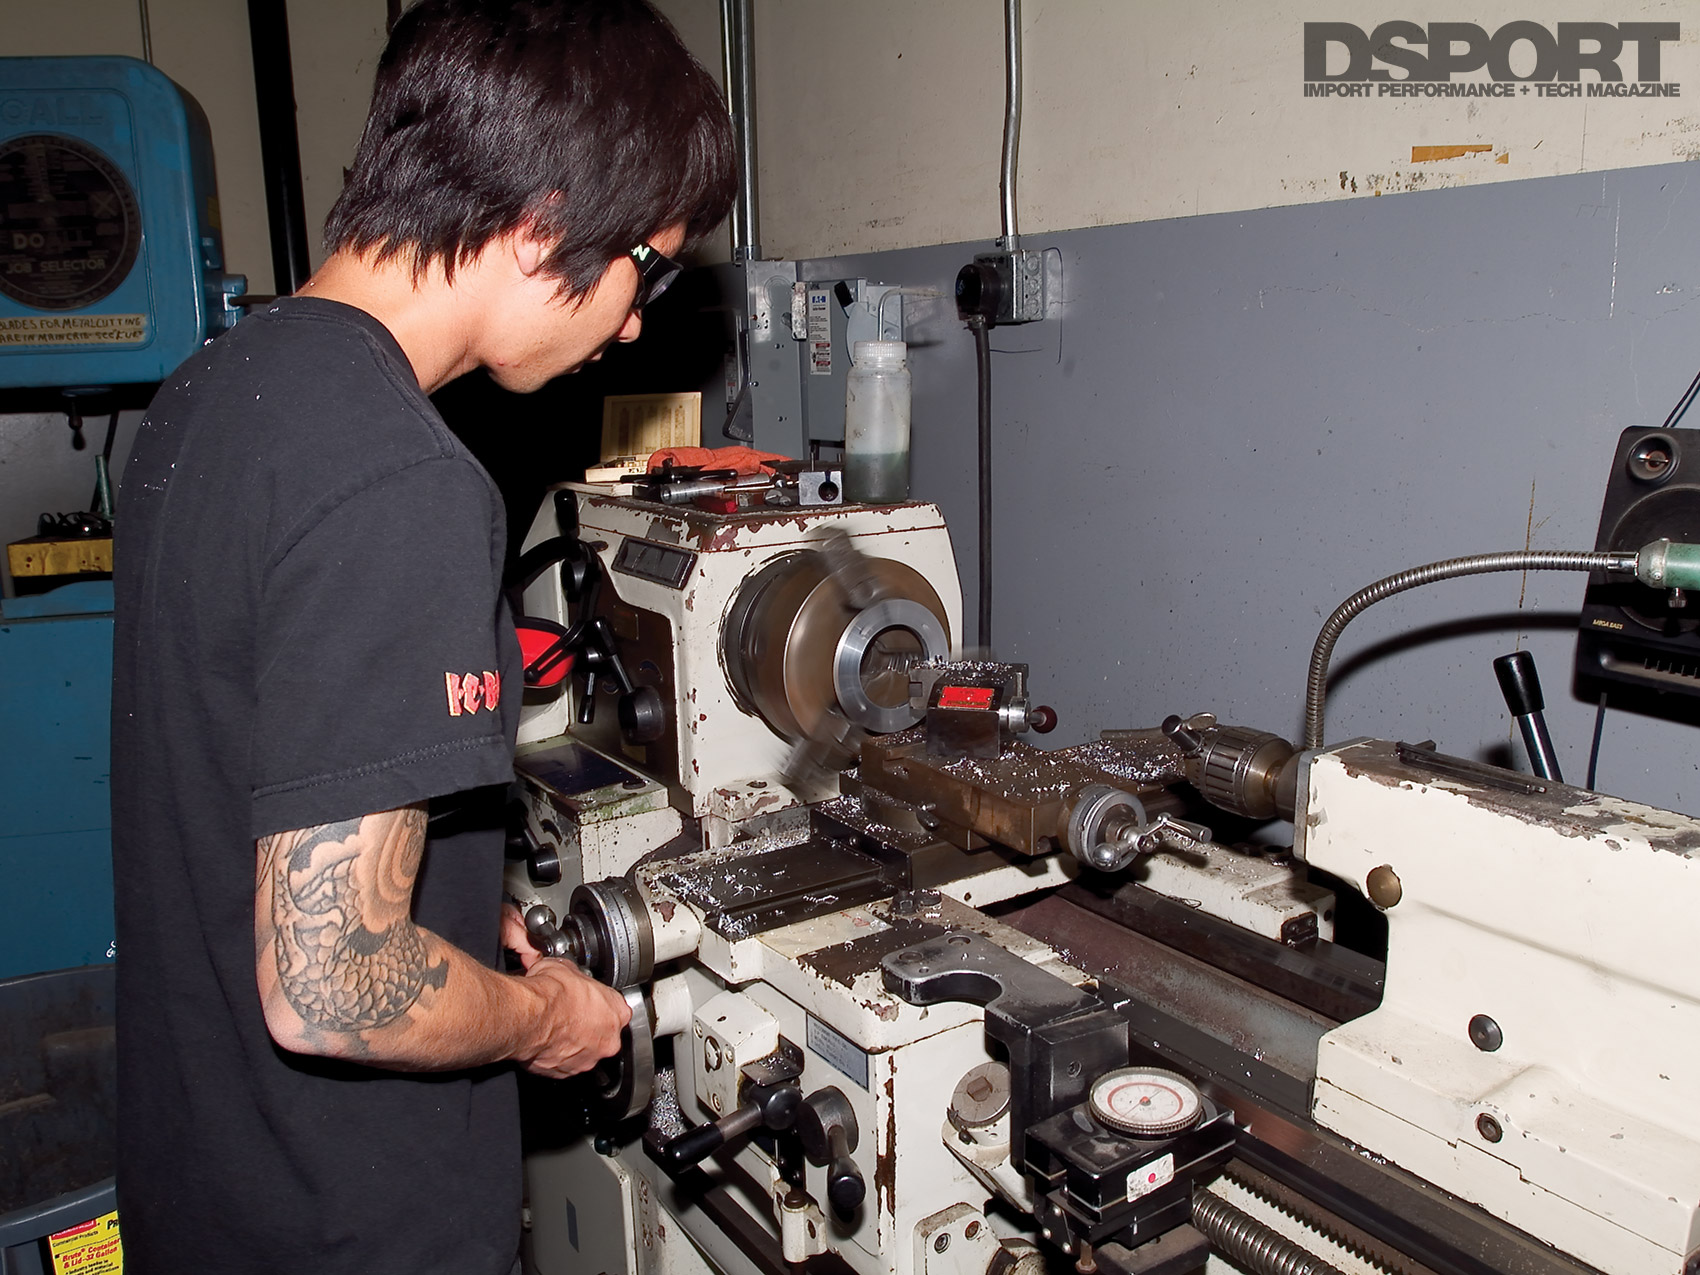 Lanny Higa using the lathe